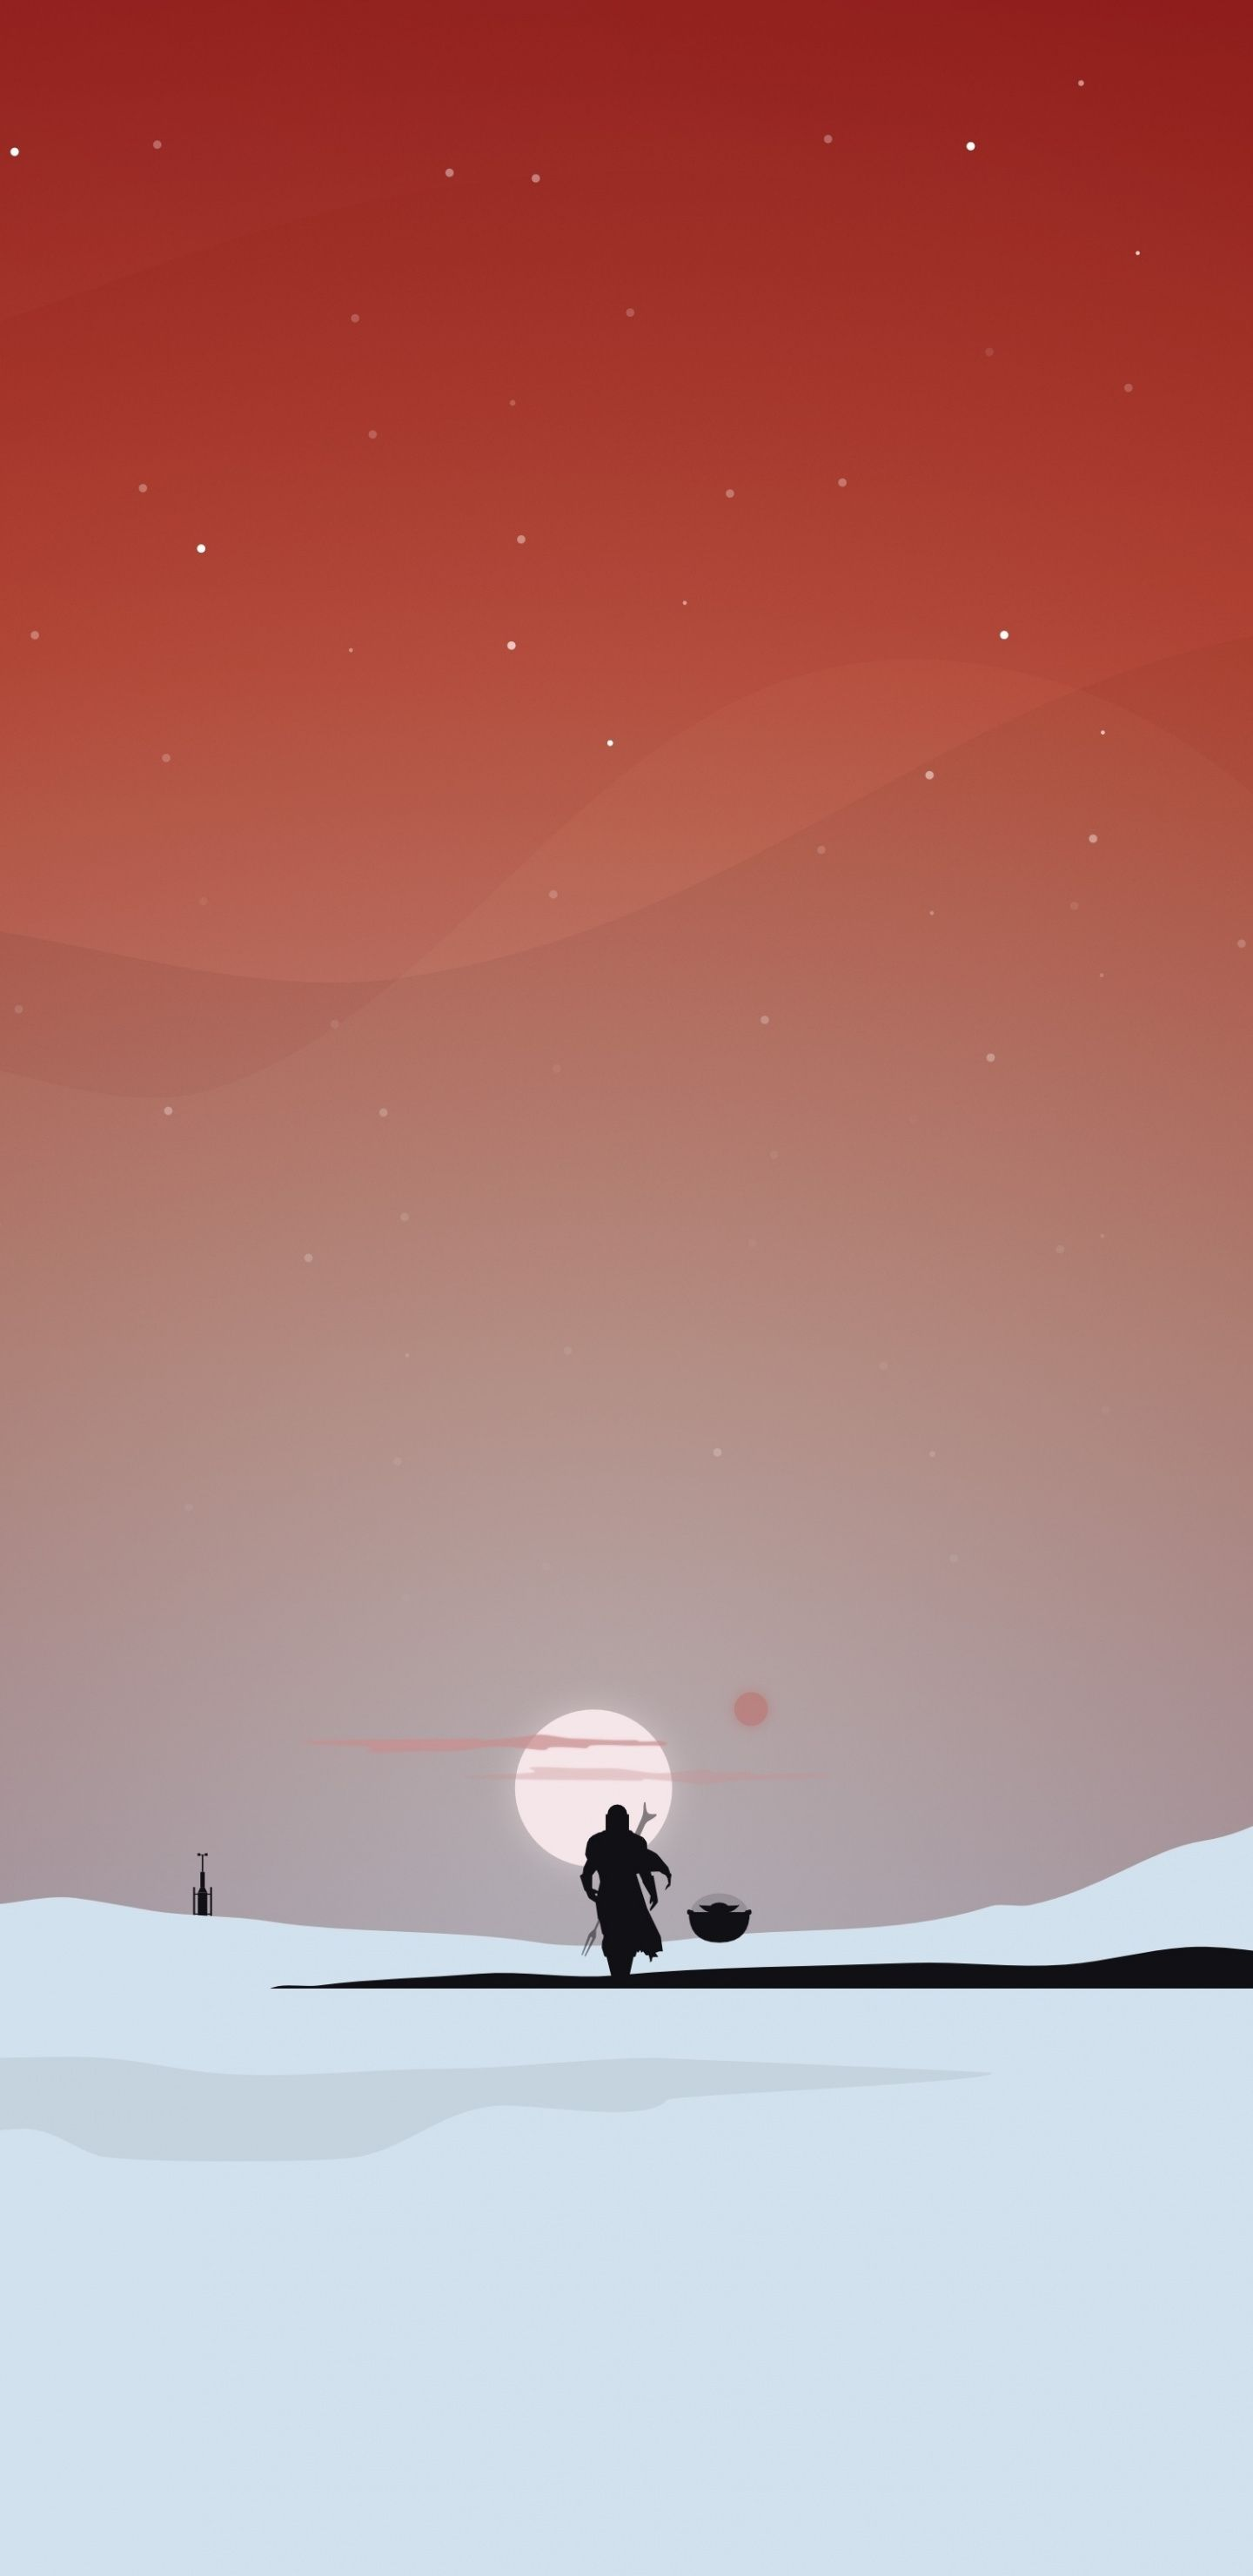 1440x2960 Minimal Star Wars The Mandalorian Silhouette Sunset Landscape 2020 Wallpaper In 2020 Star Wars Background Star Wars Drawings Star Wars Wallpaper